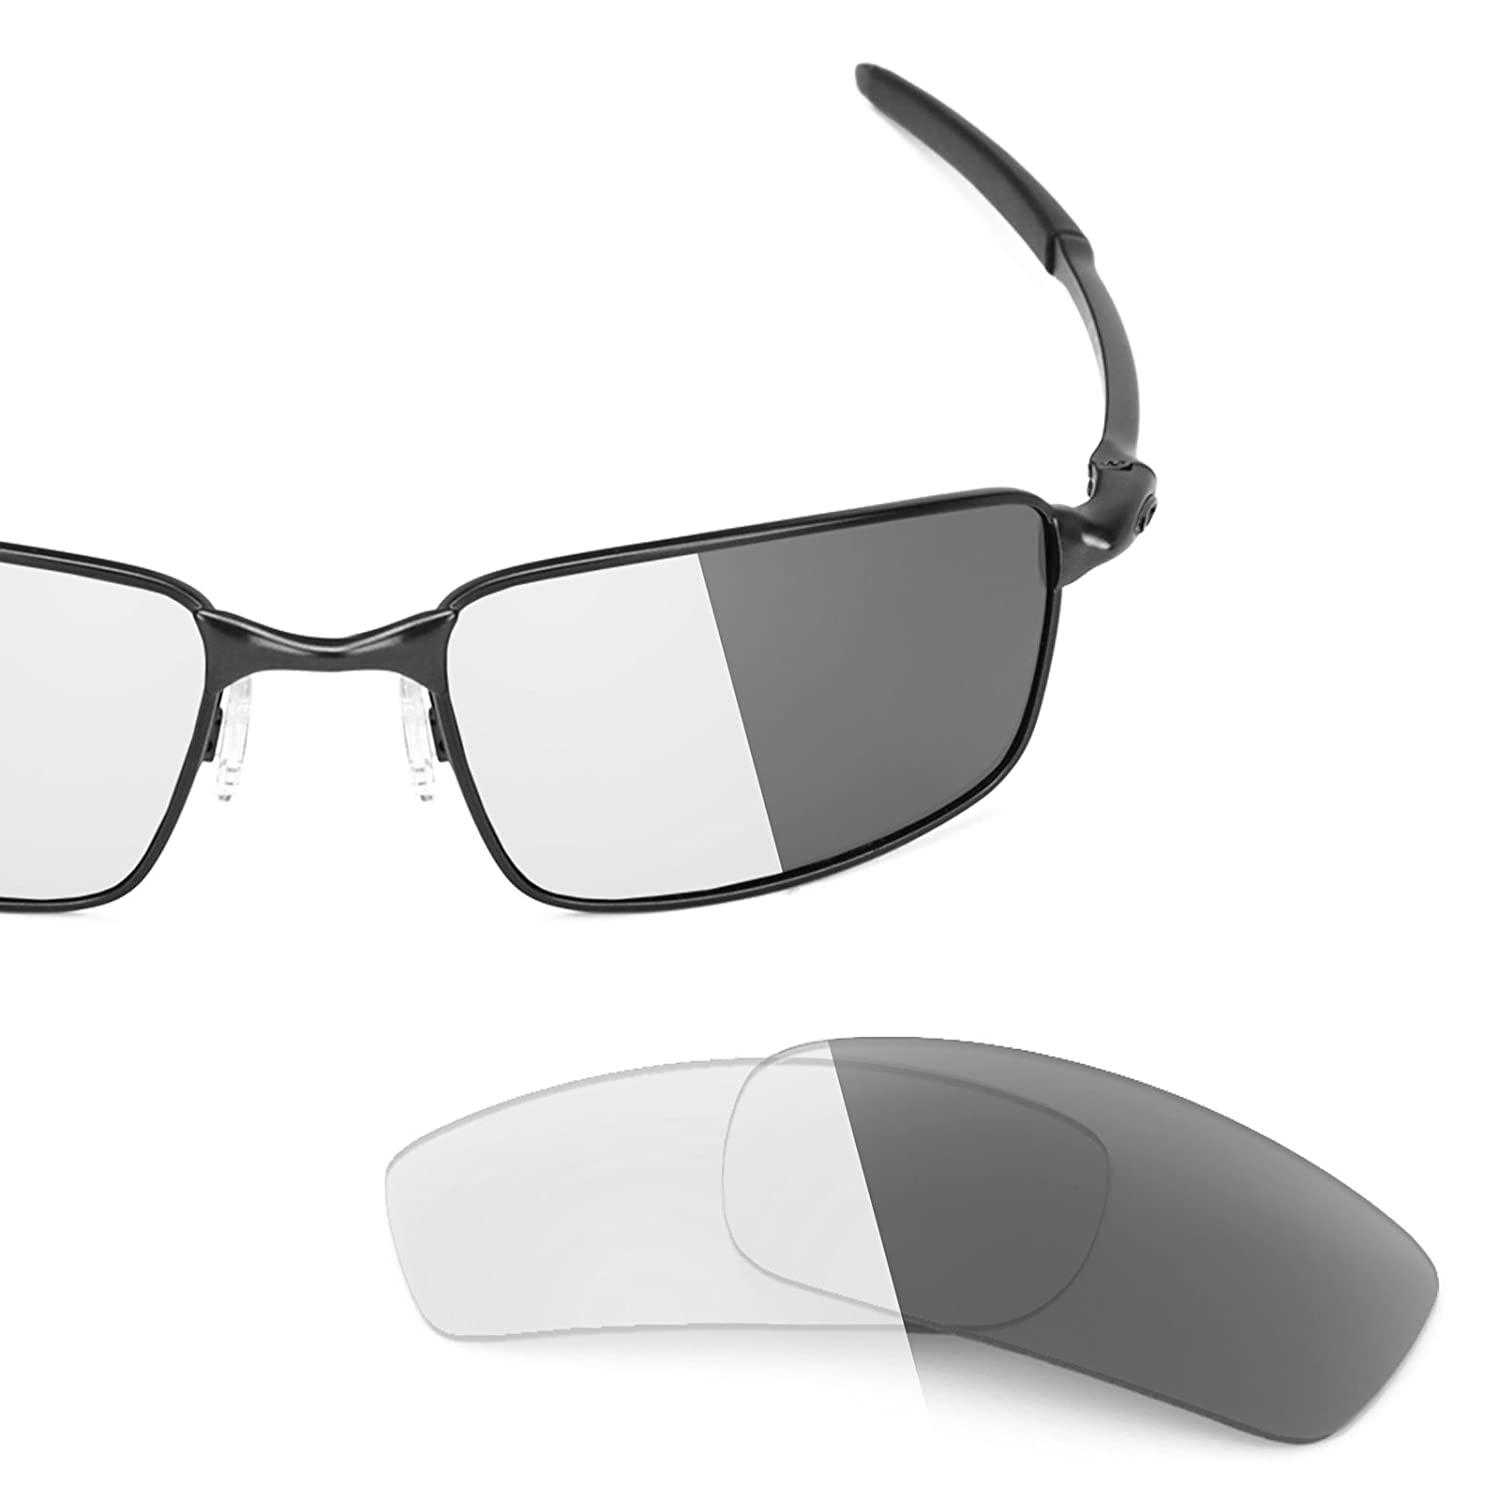 5463de6ed5 Revant Replacement Lenses for Oakley Square Wire New (2006) Elite Adapt  Grey Photochromic  Amazon.co.uk  Clothing